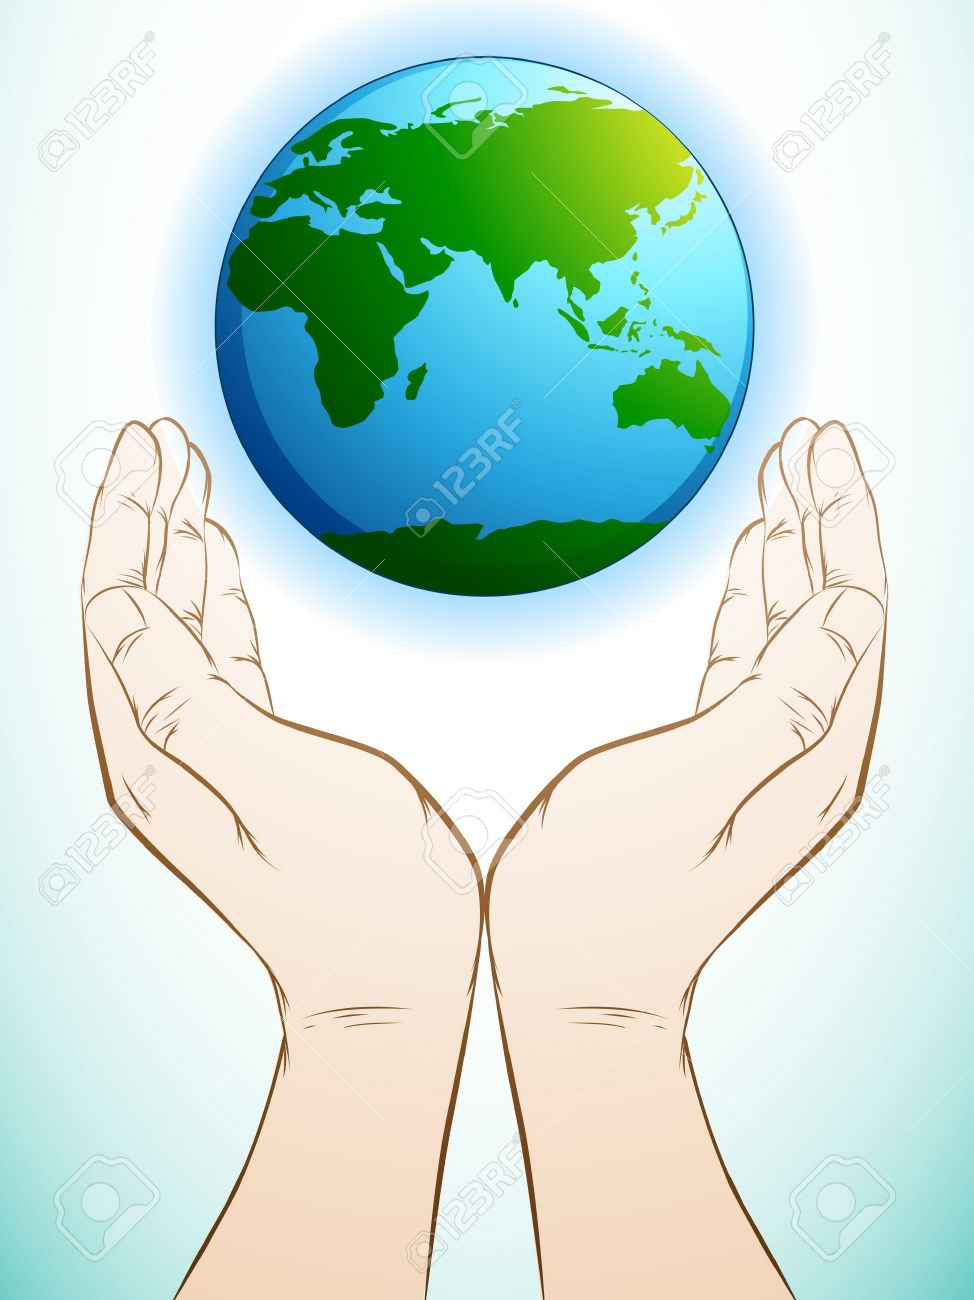 Hands Holding The Earth Clipart.